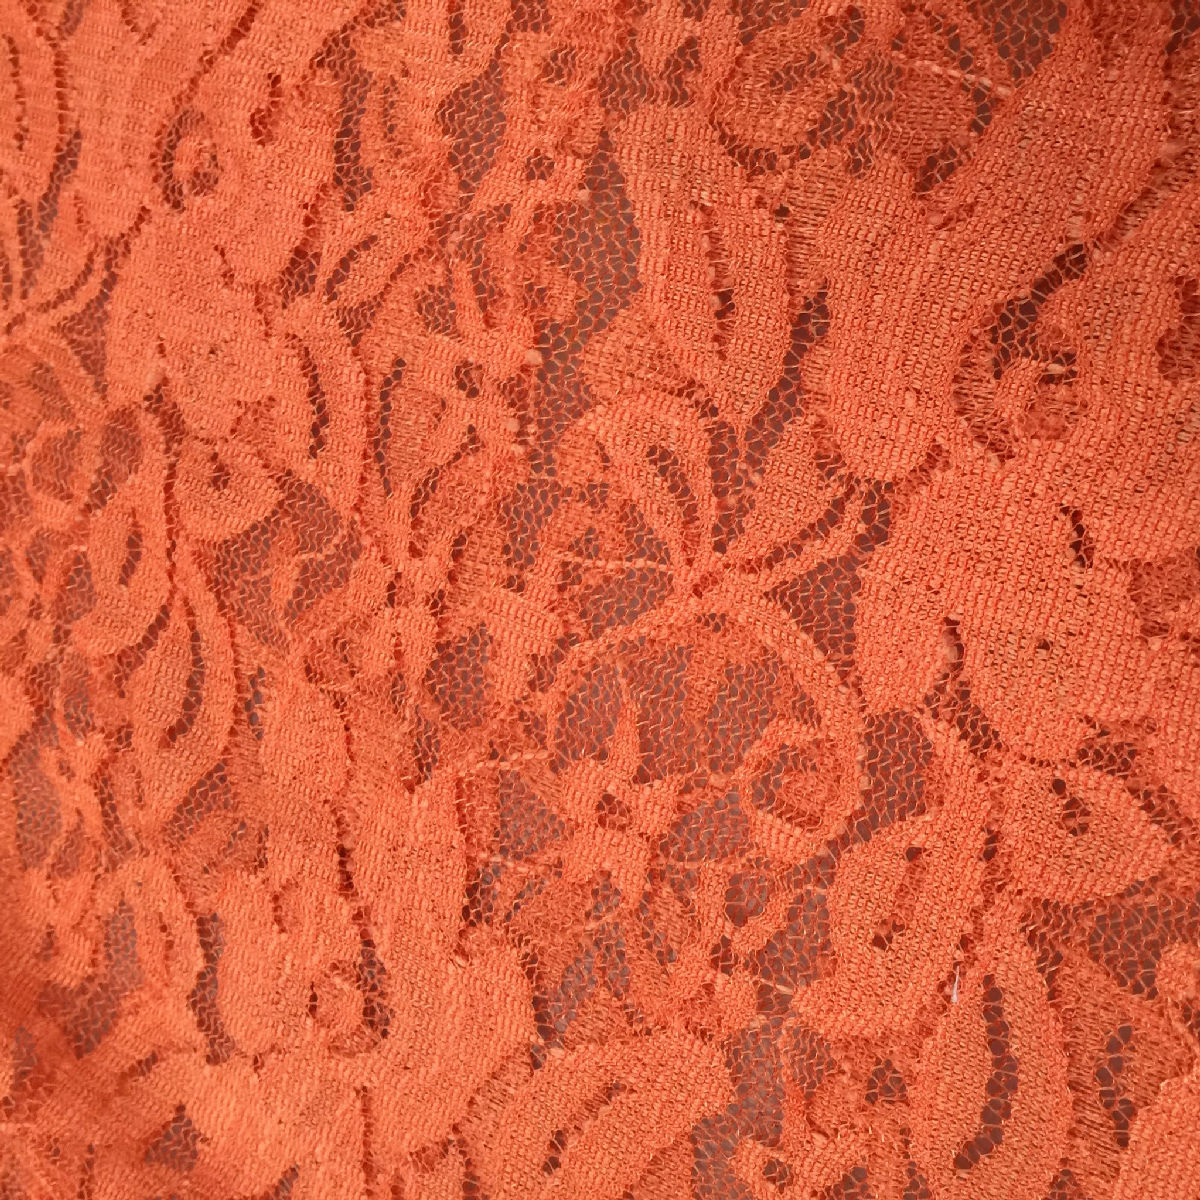 STUNNING Orange Flower Floral Lace Fabric 150cm Wide Sold By Metre